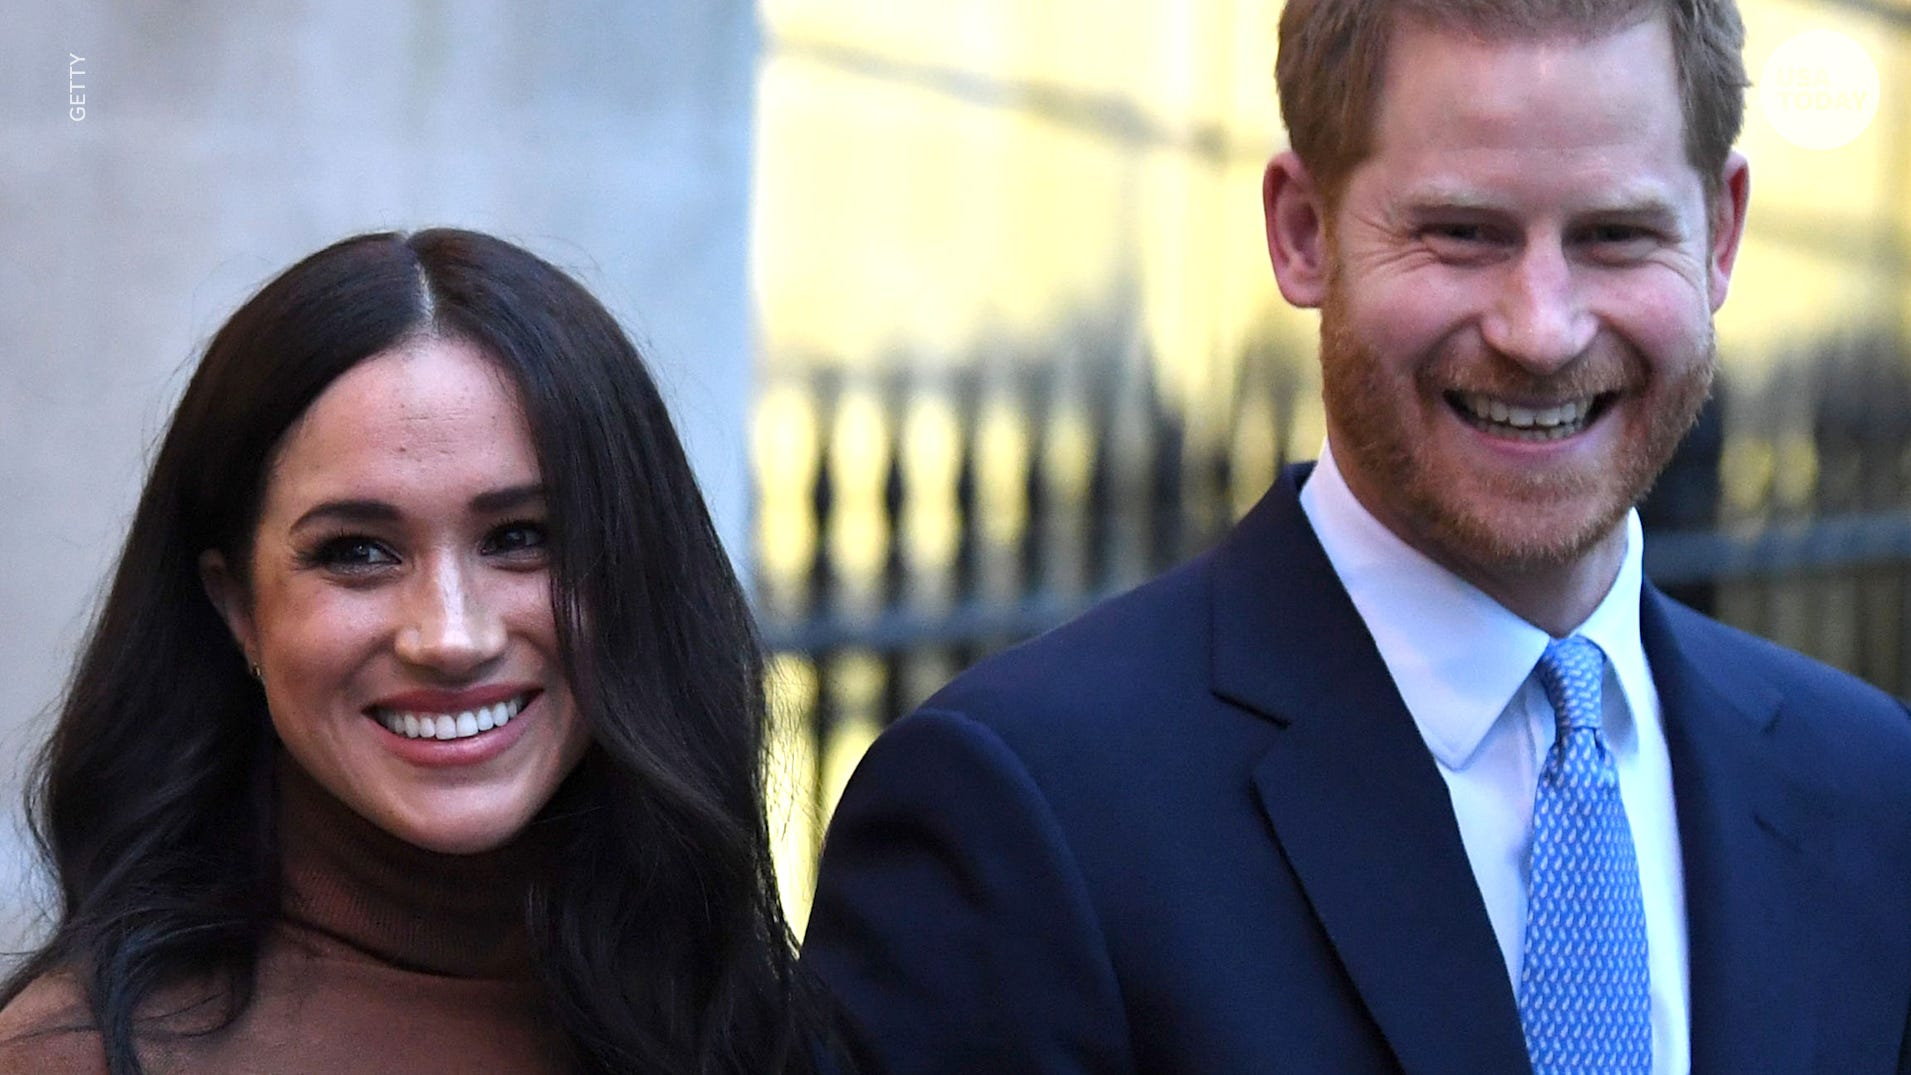 meghan markle harry show how families struggle with financial ties prince harry duchess meghan are stepping back as senior royals